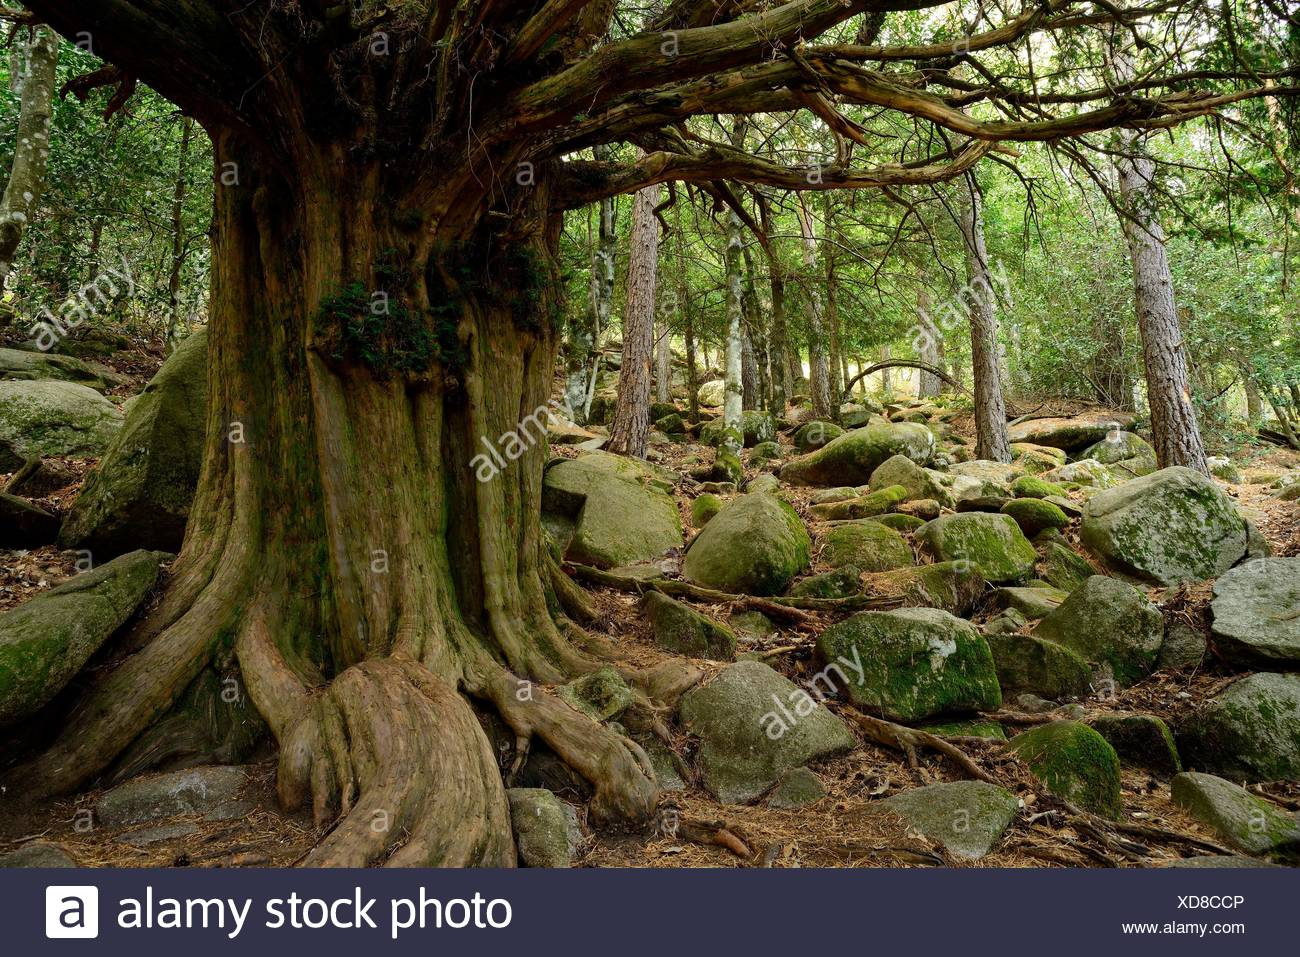 Old Yew (Taxus baccata) near Canencia mountain pass, Madrid province, Spain - Stock Image